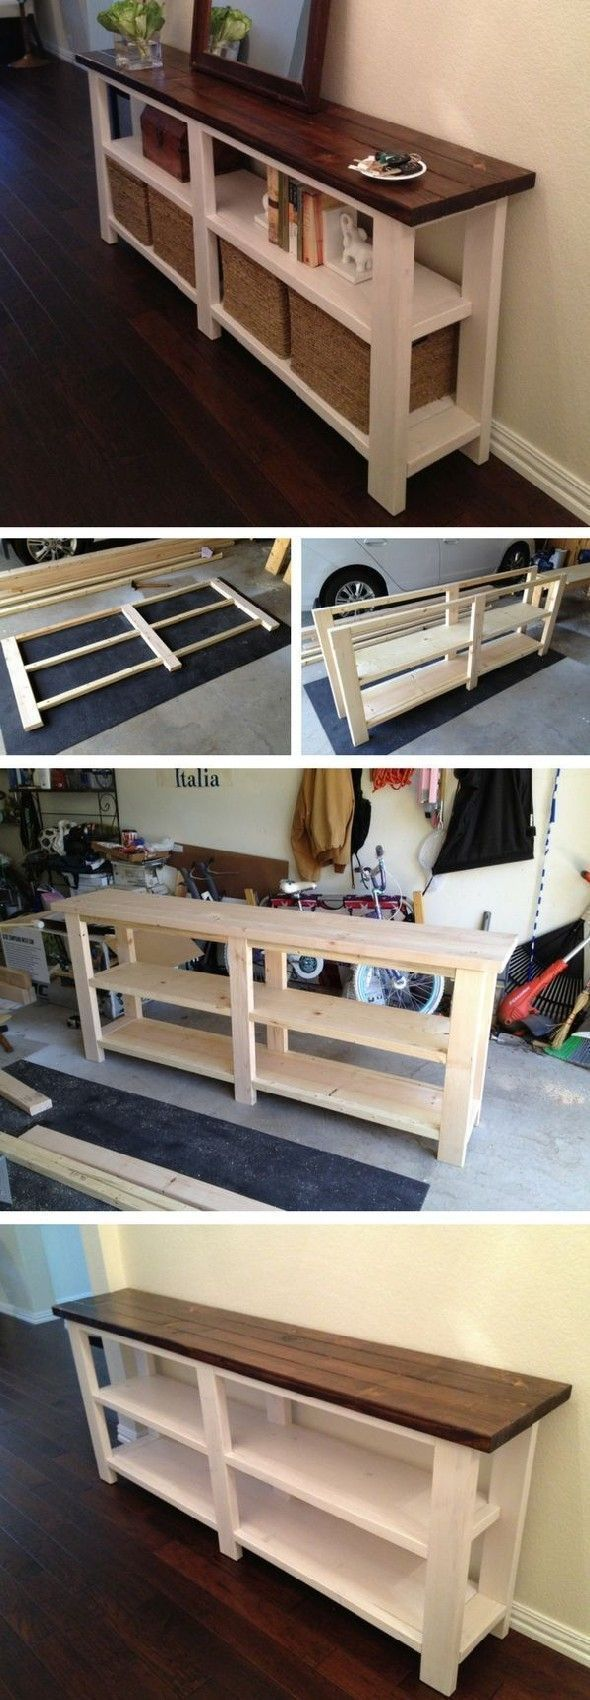 Outstanding 60+ Best Amazing DIY Furniture Ideas to Steal https://bosidolot.com/2018/02/19/60-best-amazing-diy-furniture-ideas-to-steal/ #diyfurniture